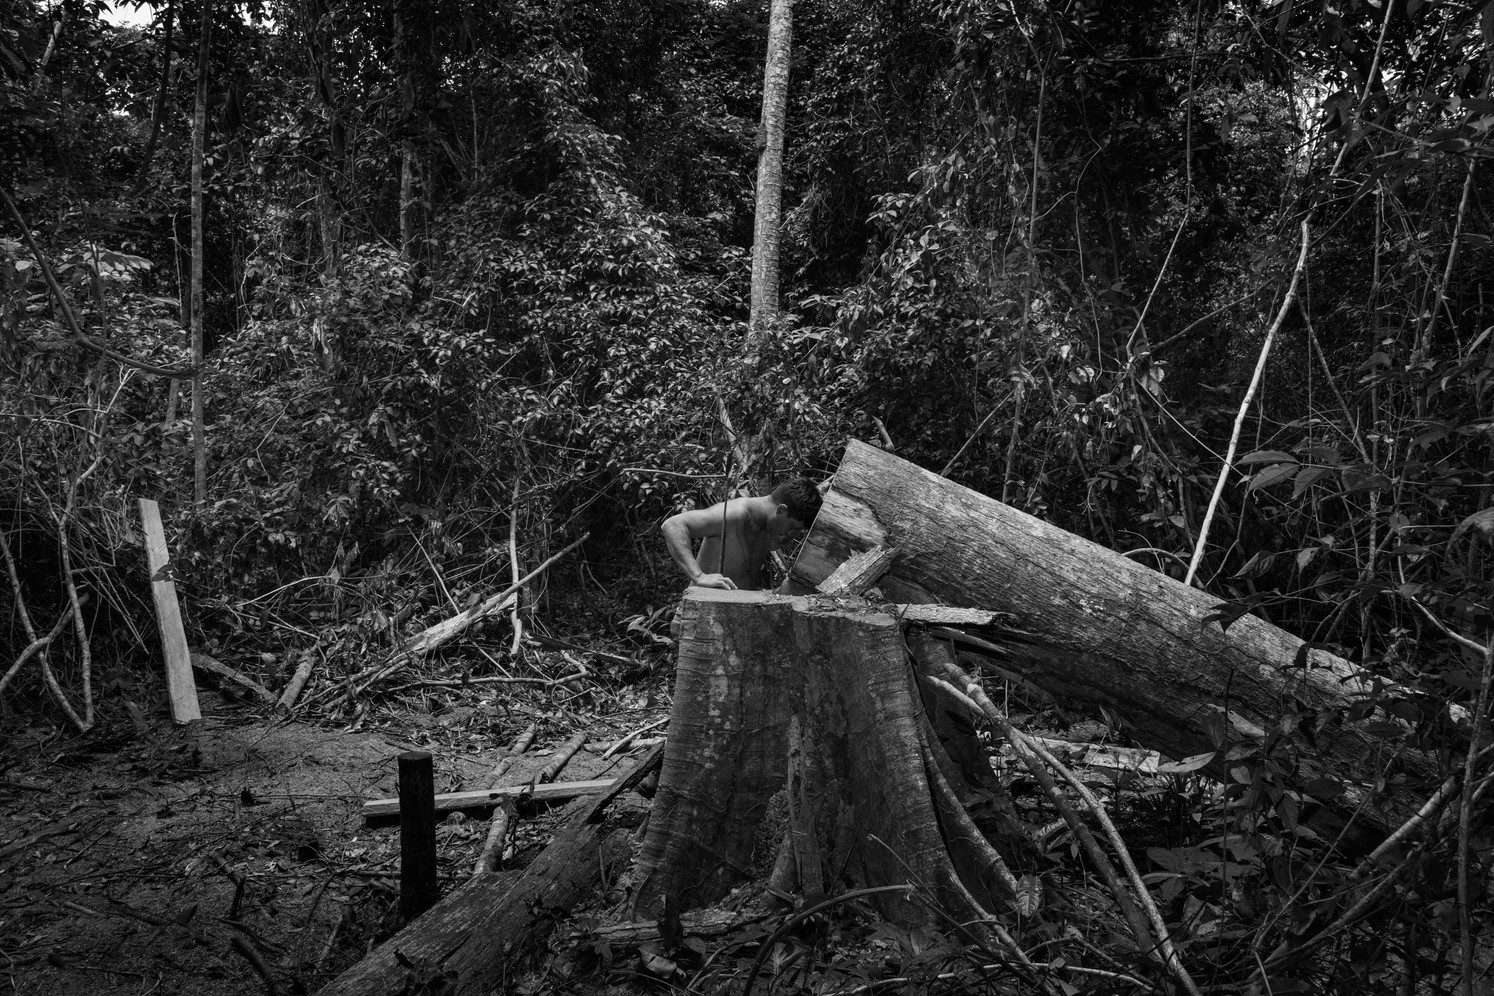 A member of the Guajajara forest guard in a moment of of sad silence at the sight of a toppled tree cut down by suspected illegal loggers on the Araribóia indigenous reserve in Maranhão state. With deep cuts to Brazil's environmental and indigenous protection bodies in recent years, tribespeople across the Amazon are increasingly forming vigilante groups to protect their lands against unscrupulous farmers, loggers and land grabbers. But it's dangerous work. Indigenous activists who stand up to powerful interests in Brazil's Amazon states are routinely threatened, persecuted and murdered.